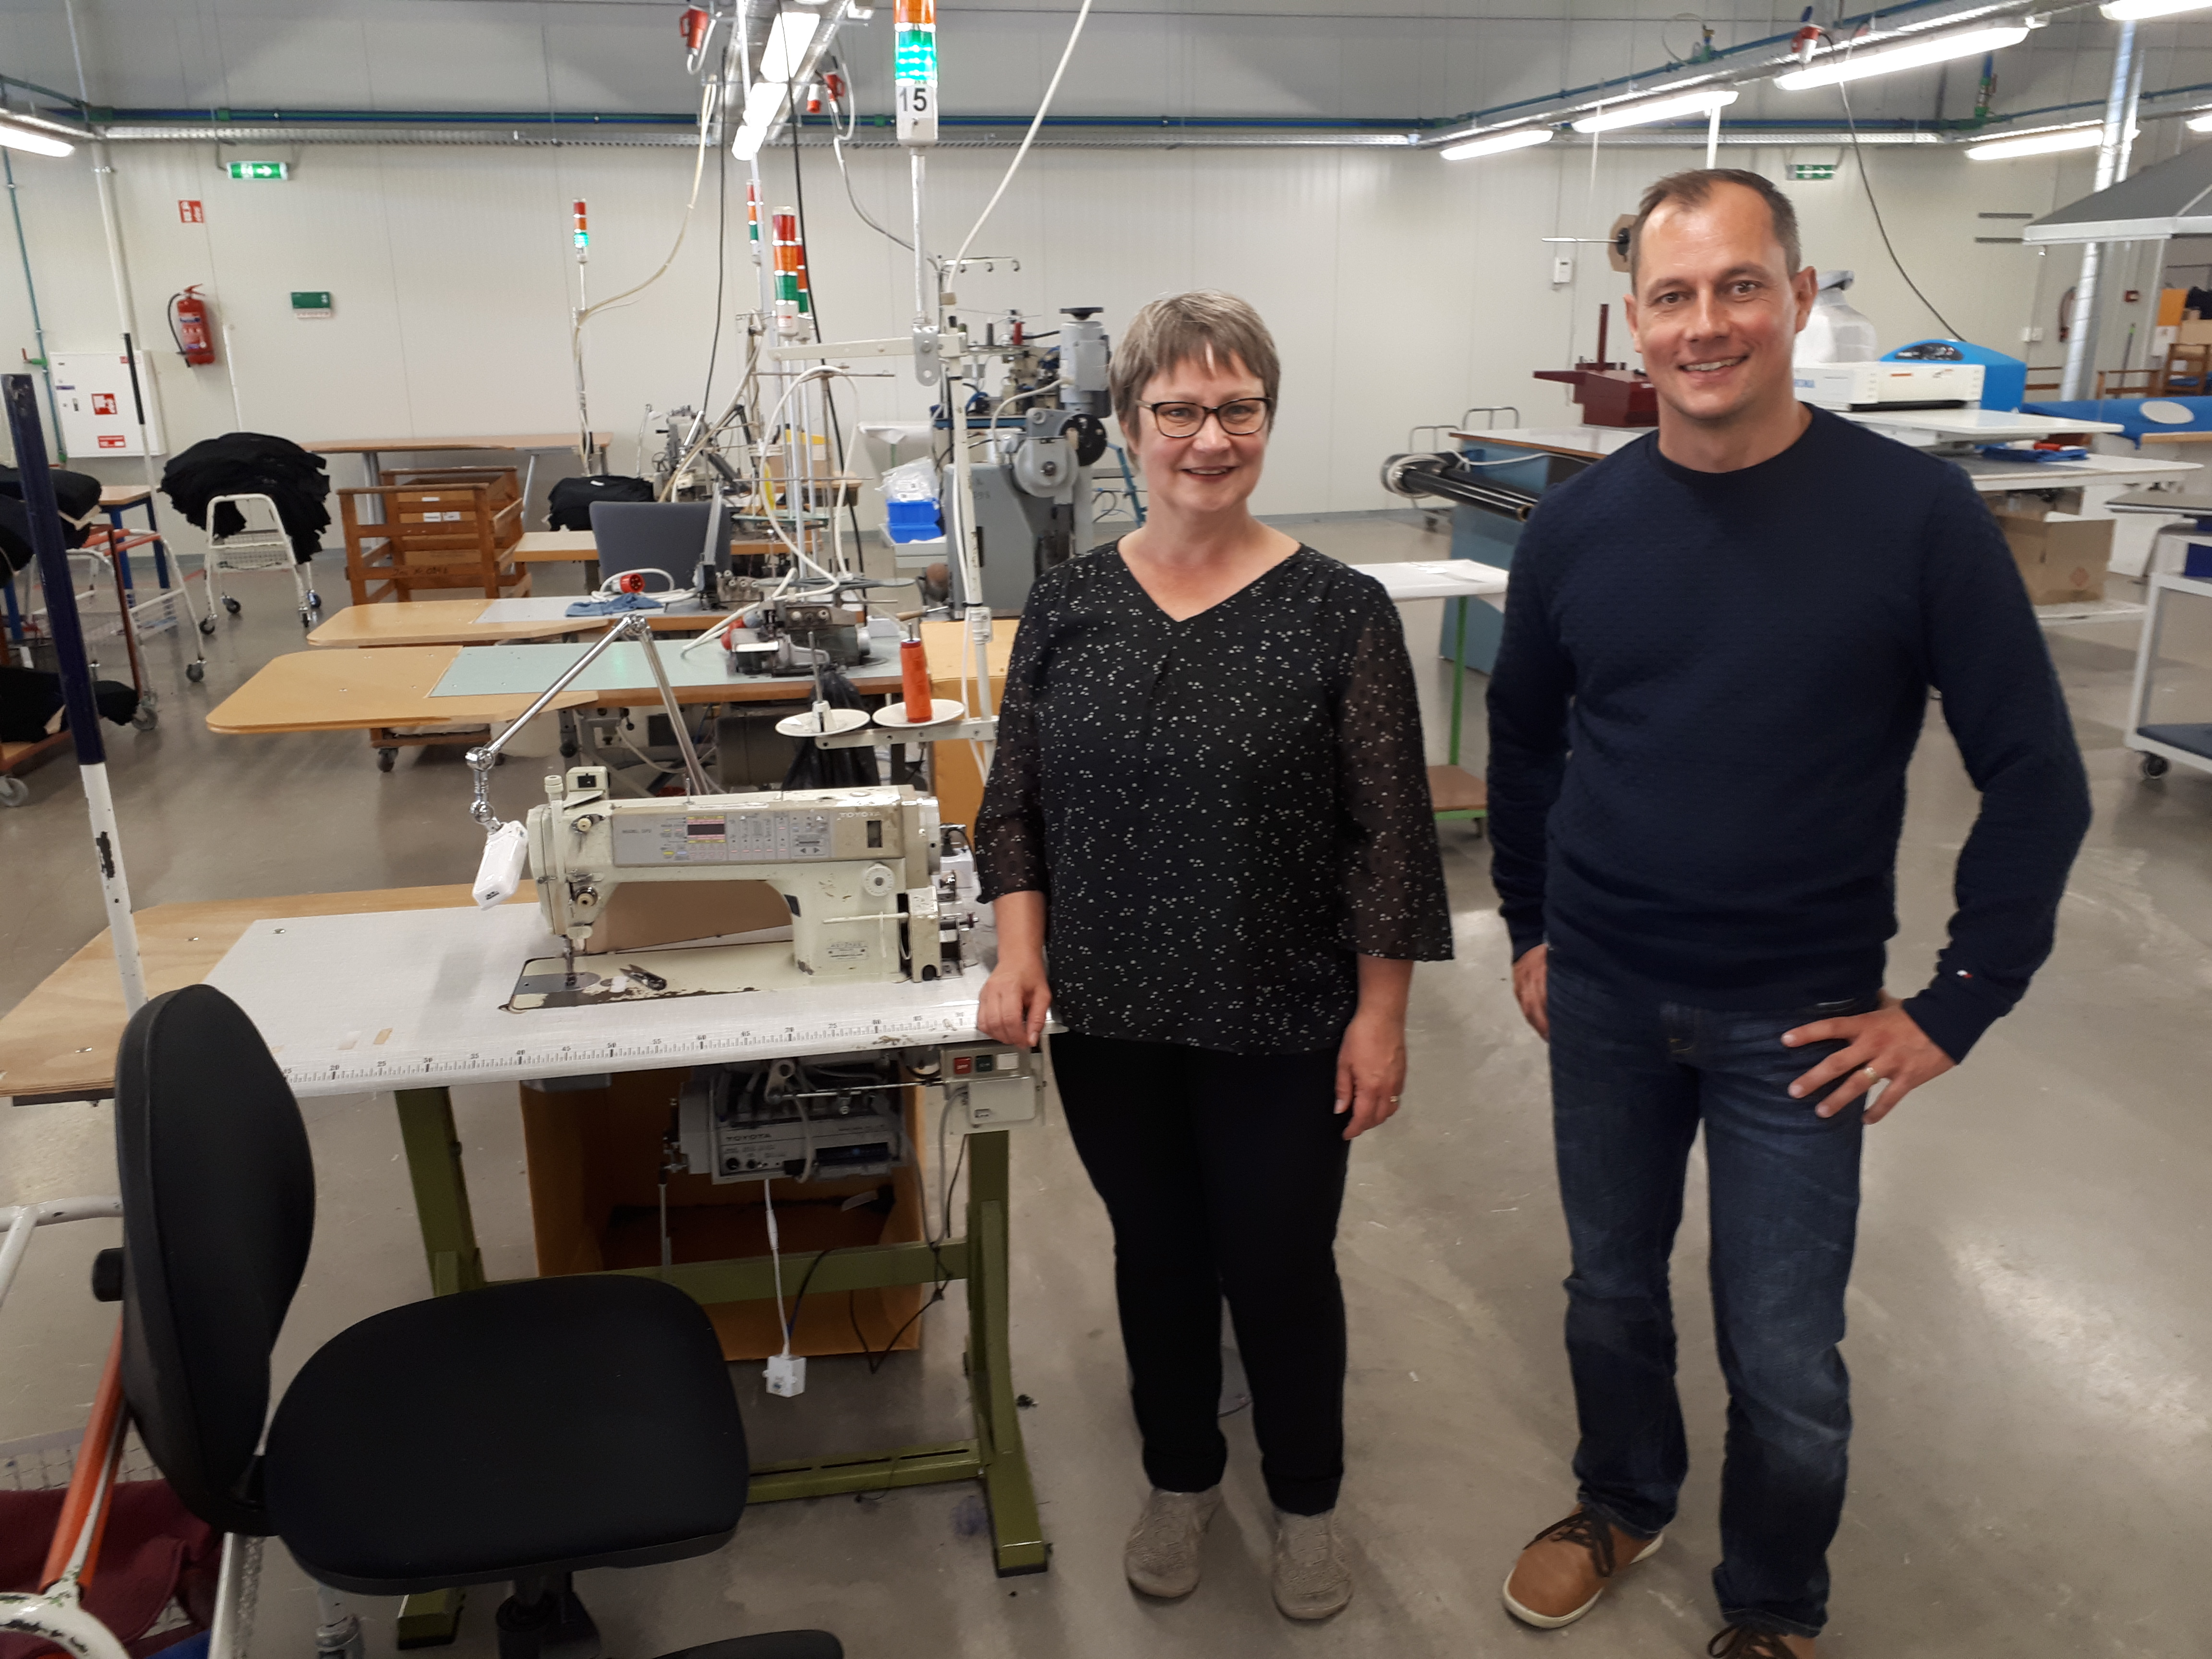 L4MS experts Päivi and Markus from VTT visiting the factory